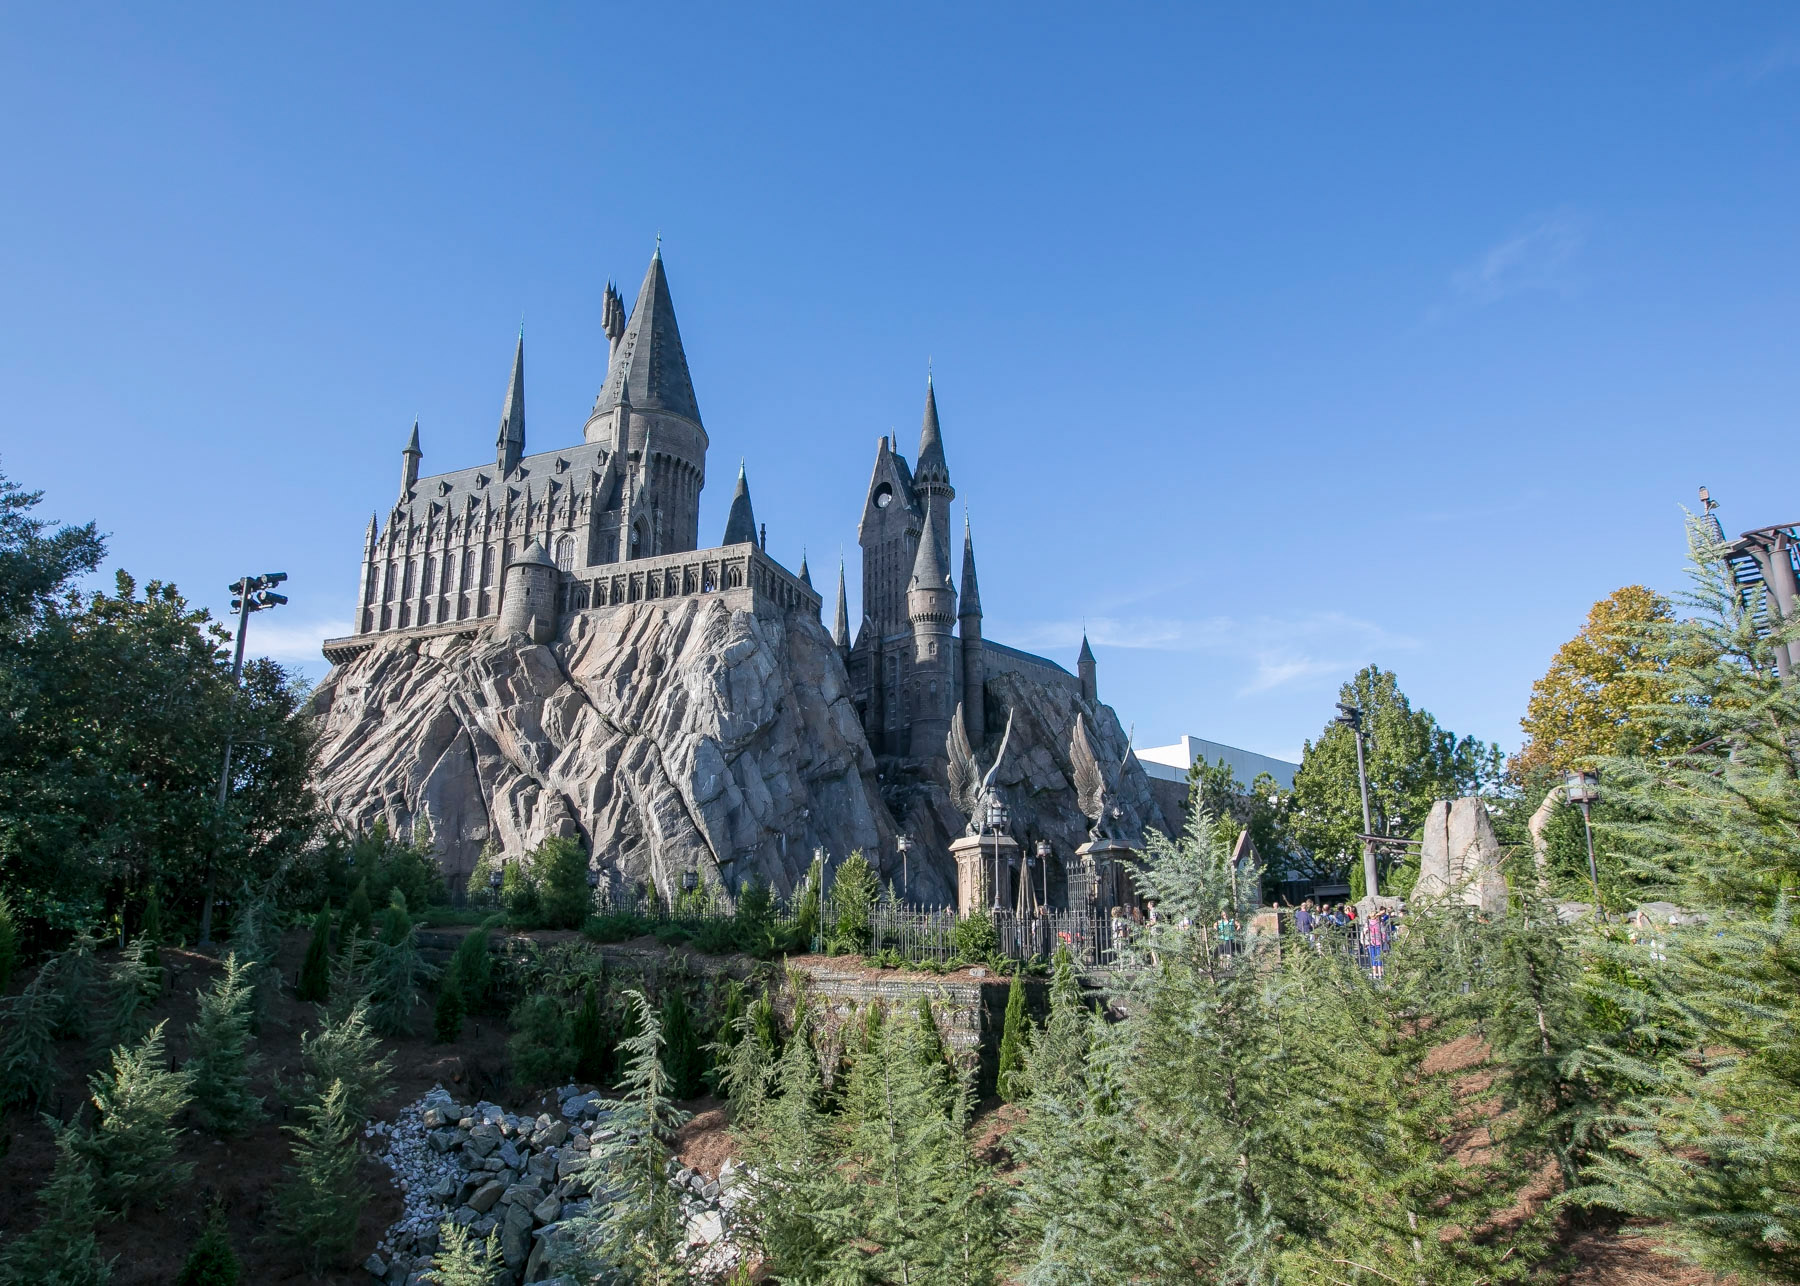 General view of Hogwarts Castle at Wizarding World of Harry Potter Diagon Alley at Universal Orlando on October 24, 2016 in Orlando, Florida.